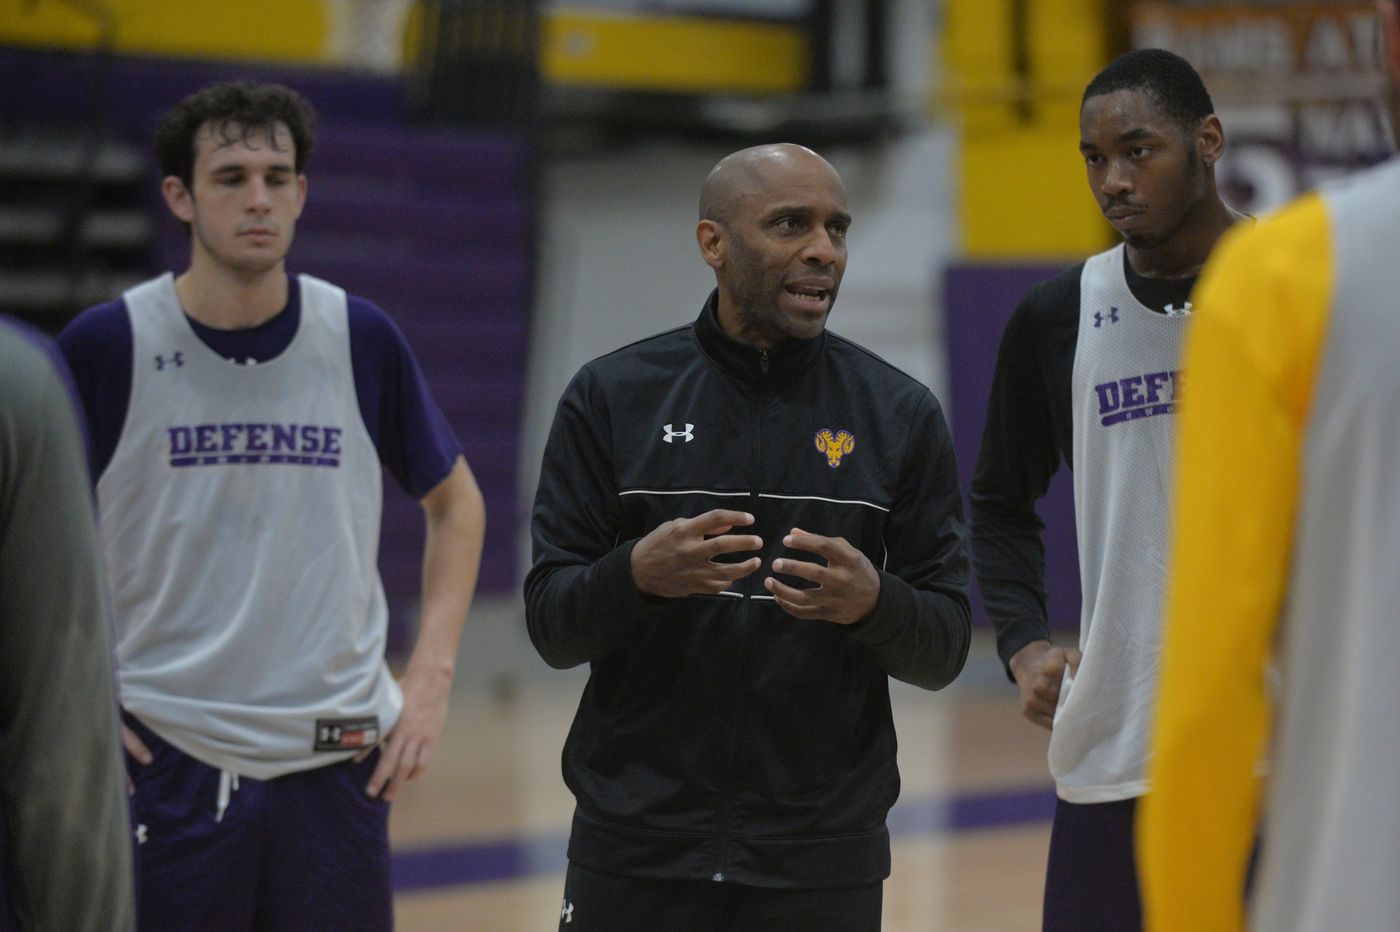 West Chester University announces no winter or spring sports